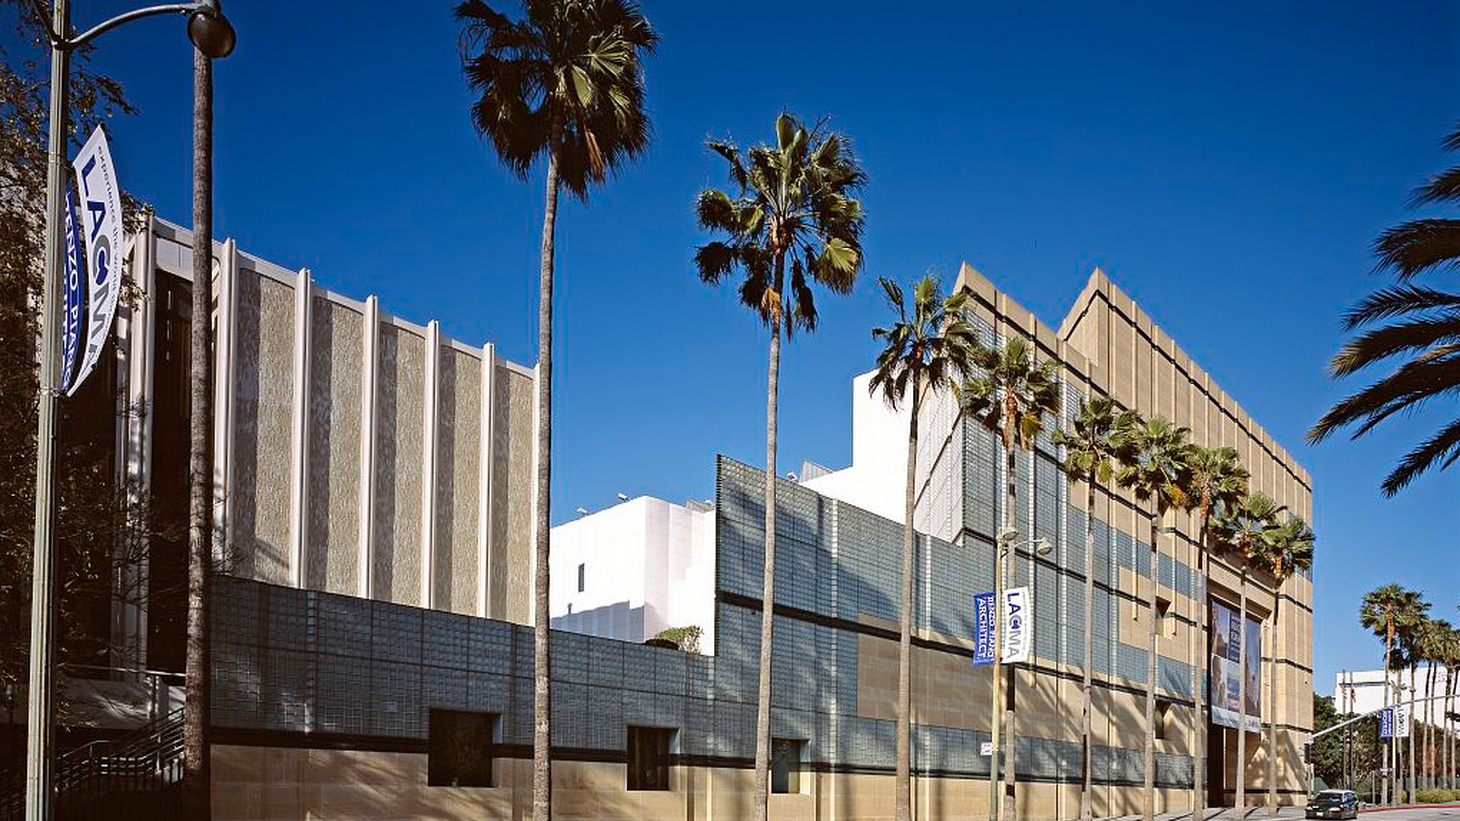 """Plans for """"transforming"""" LA County's Museum of Art include a one-story, blob-like structure inspired by the La Brea Tar Pits. Mayor Garcetti's behind it, but experts on art and architecture are divided."""